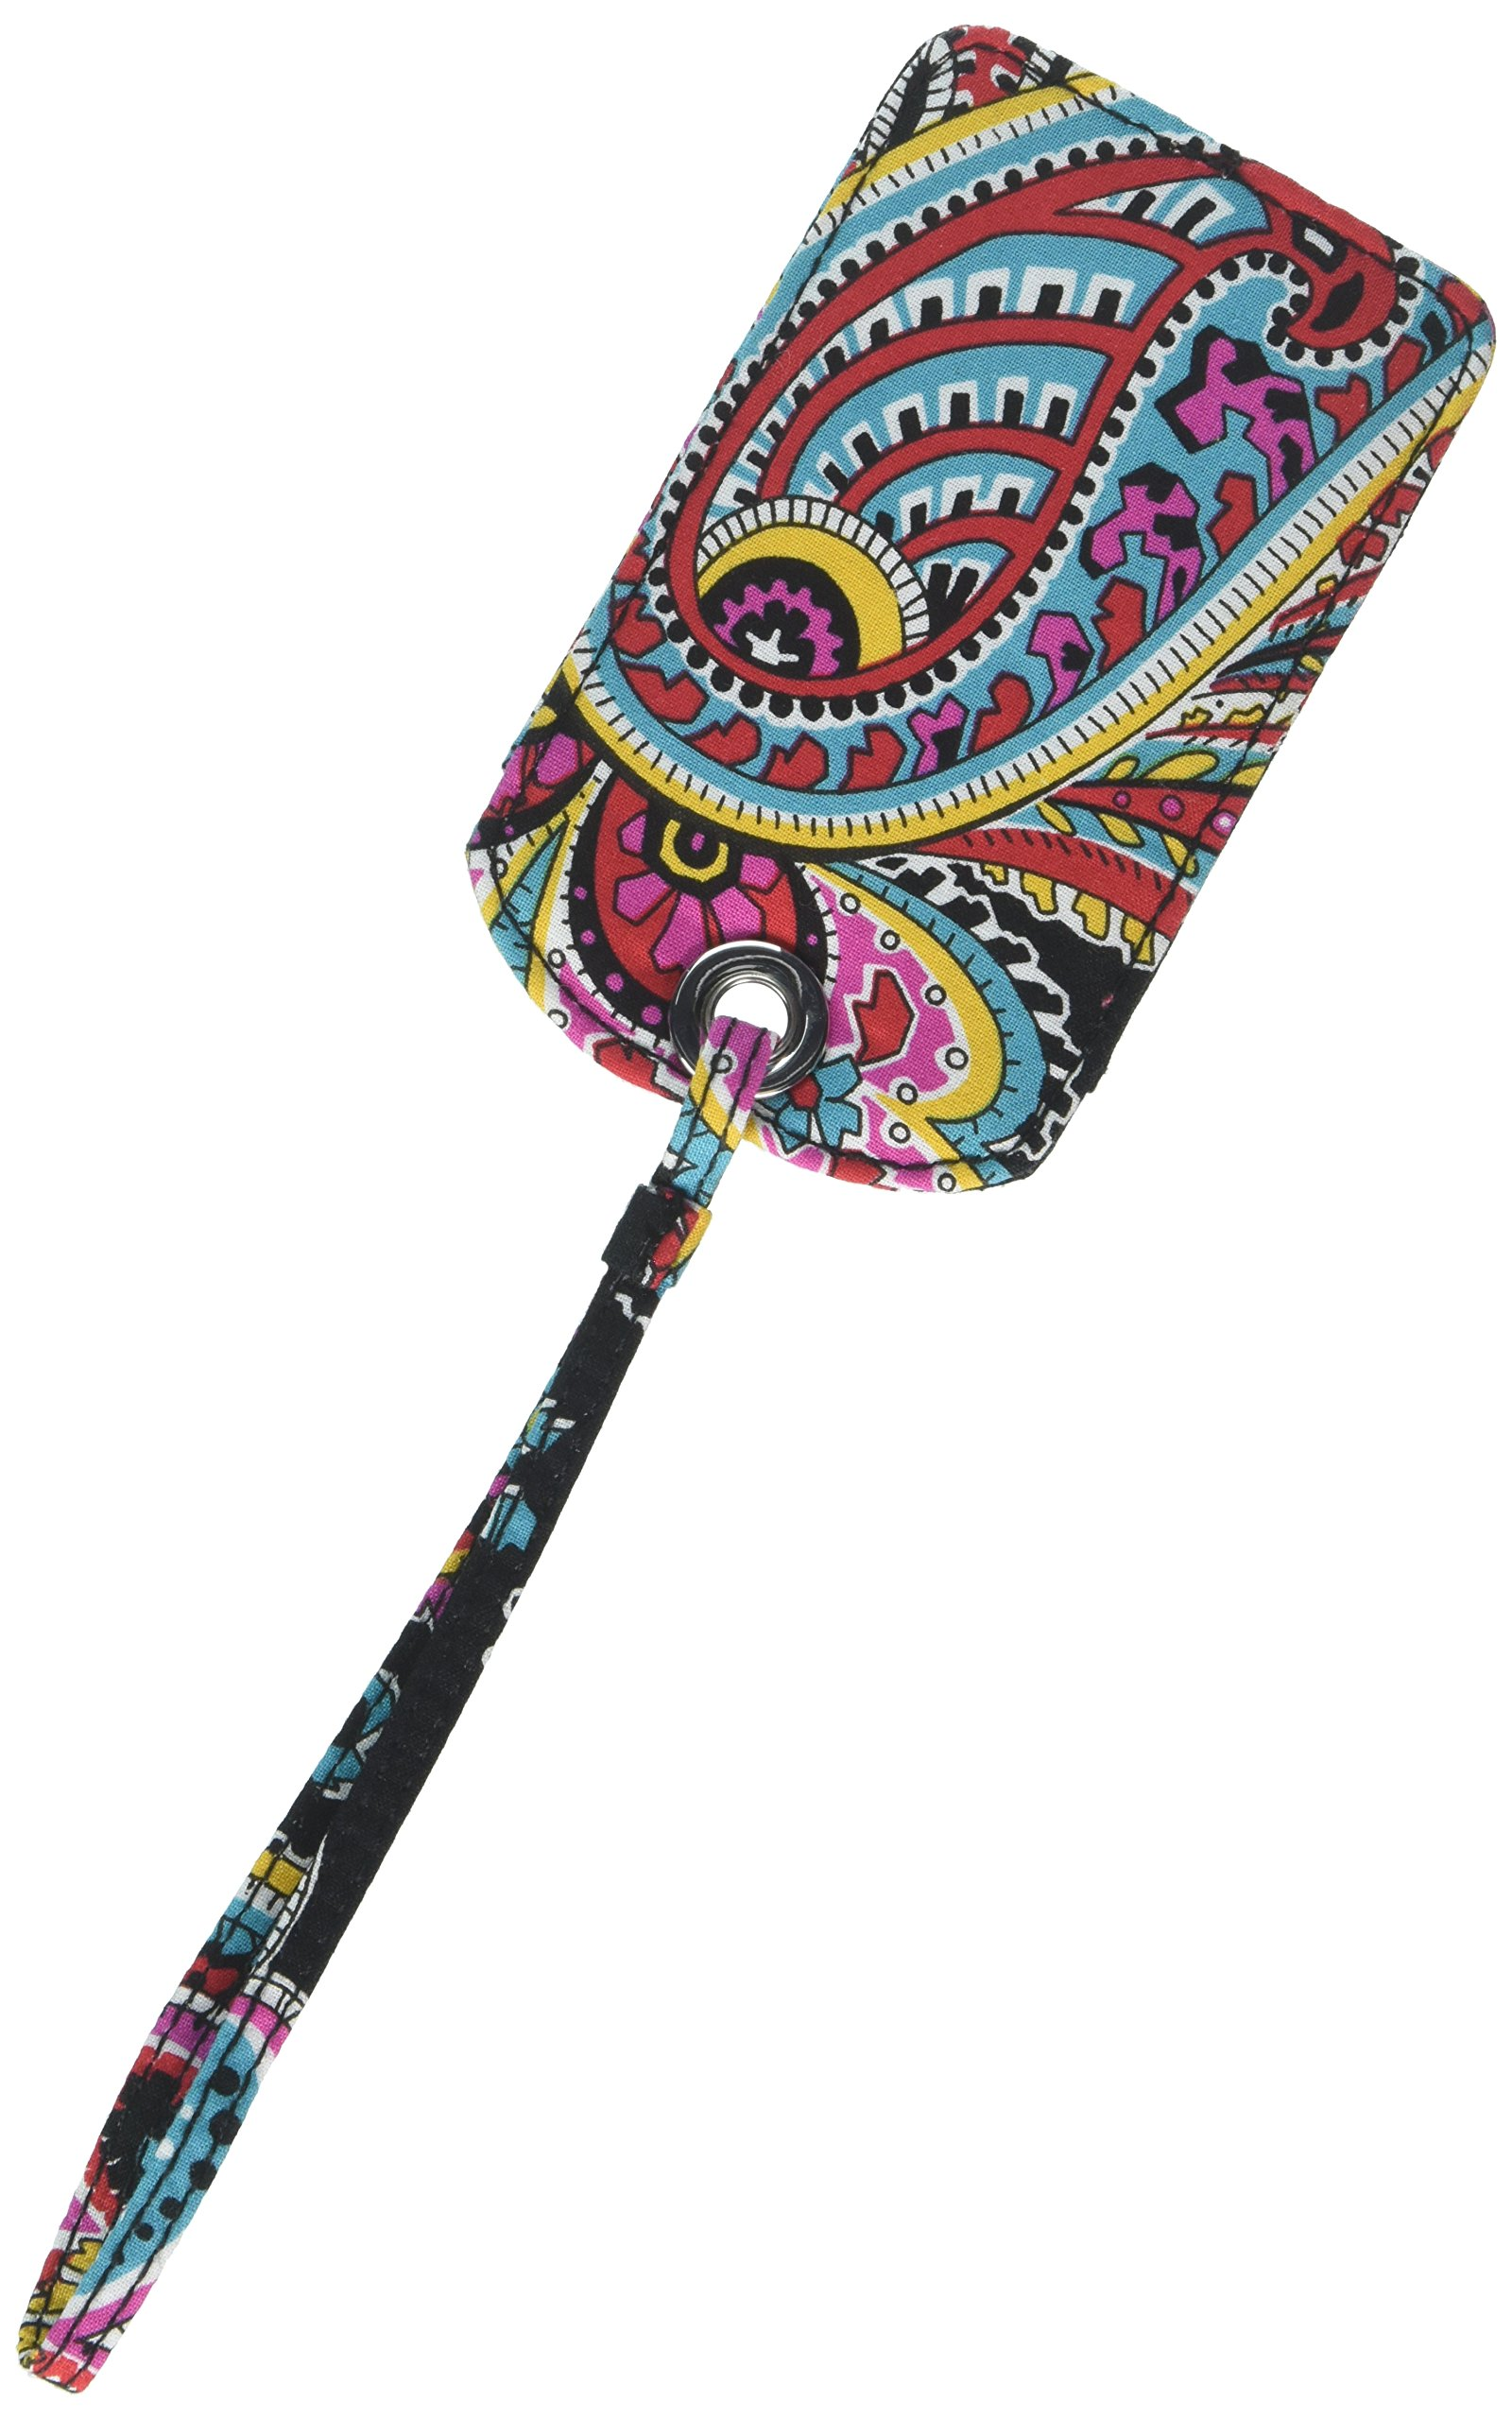 Vera Bradley Luggage Tag in Parisian Paisley, 11605-340